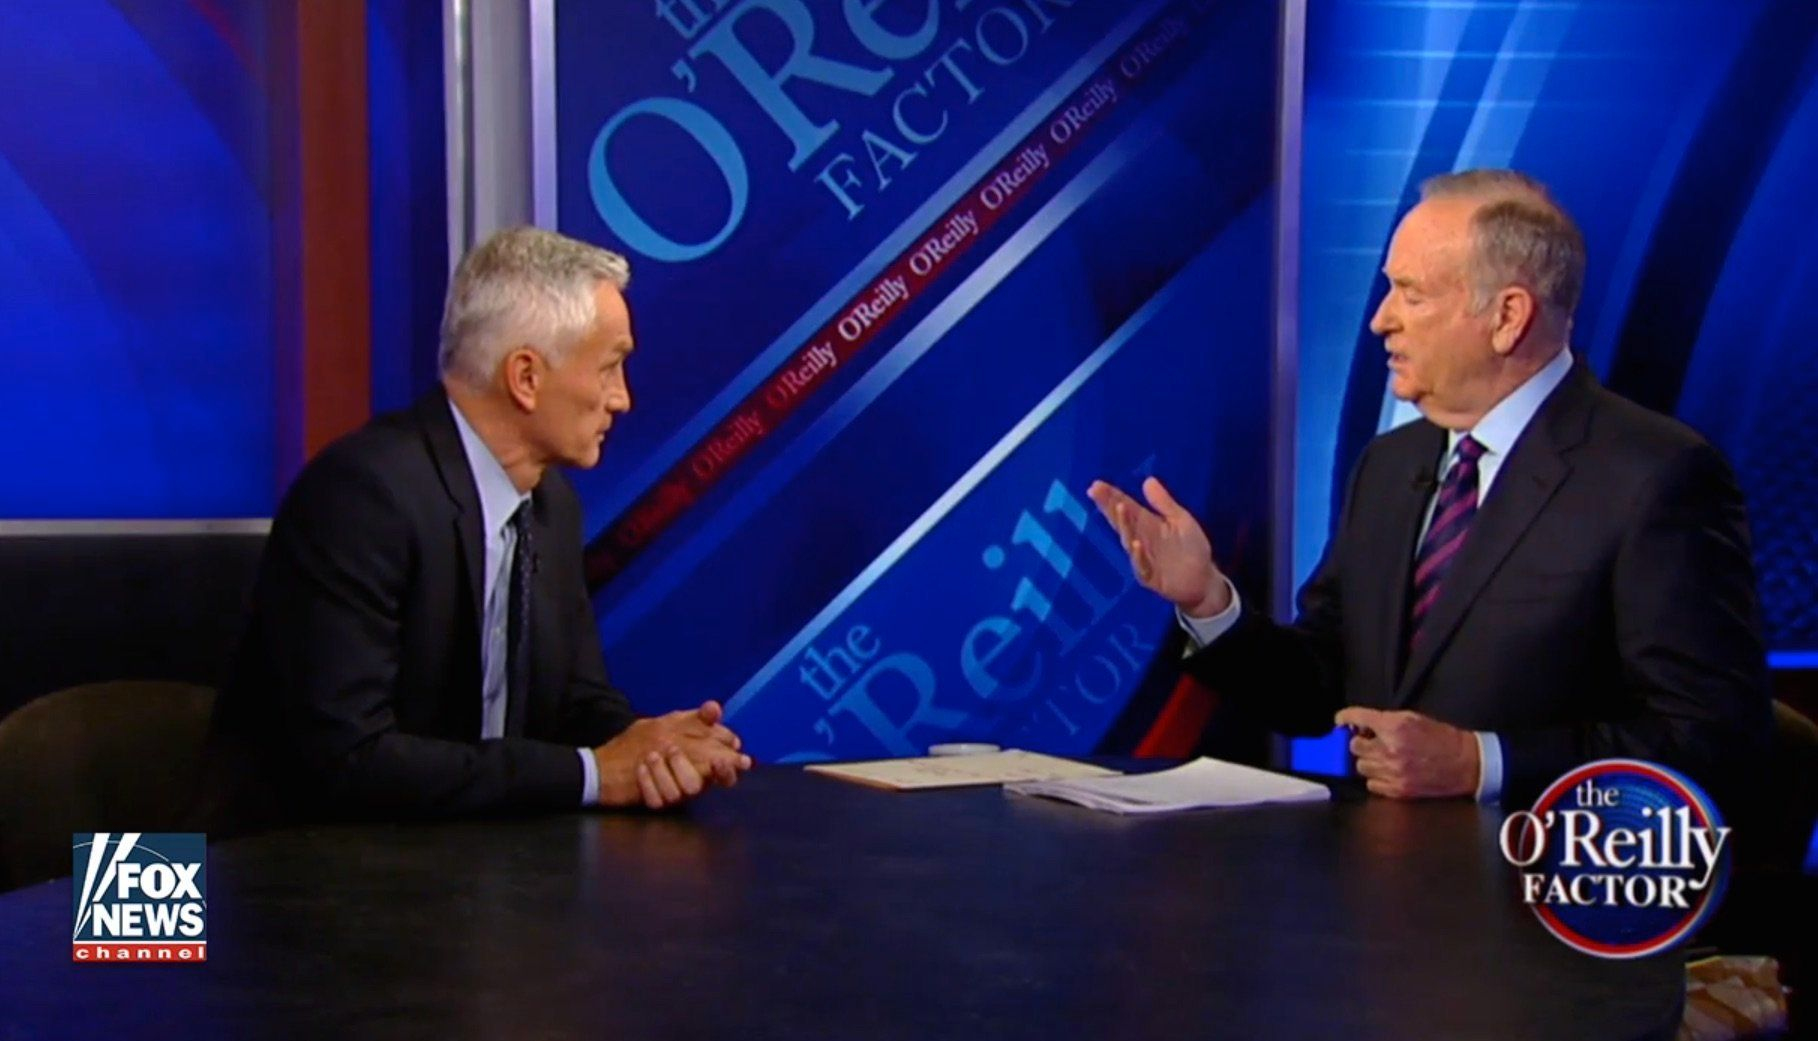 Jorge Ramos and Bill O'Reilly